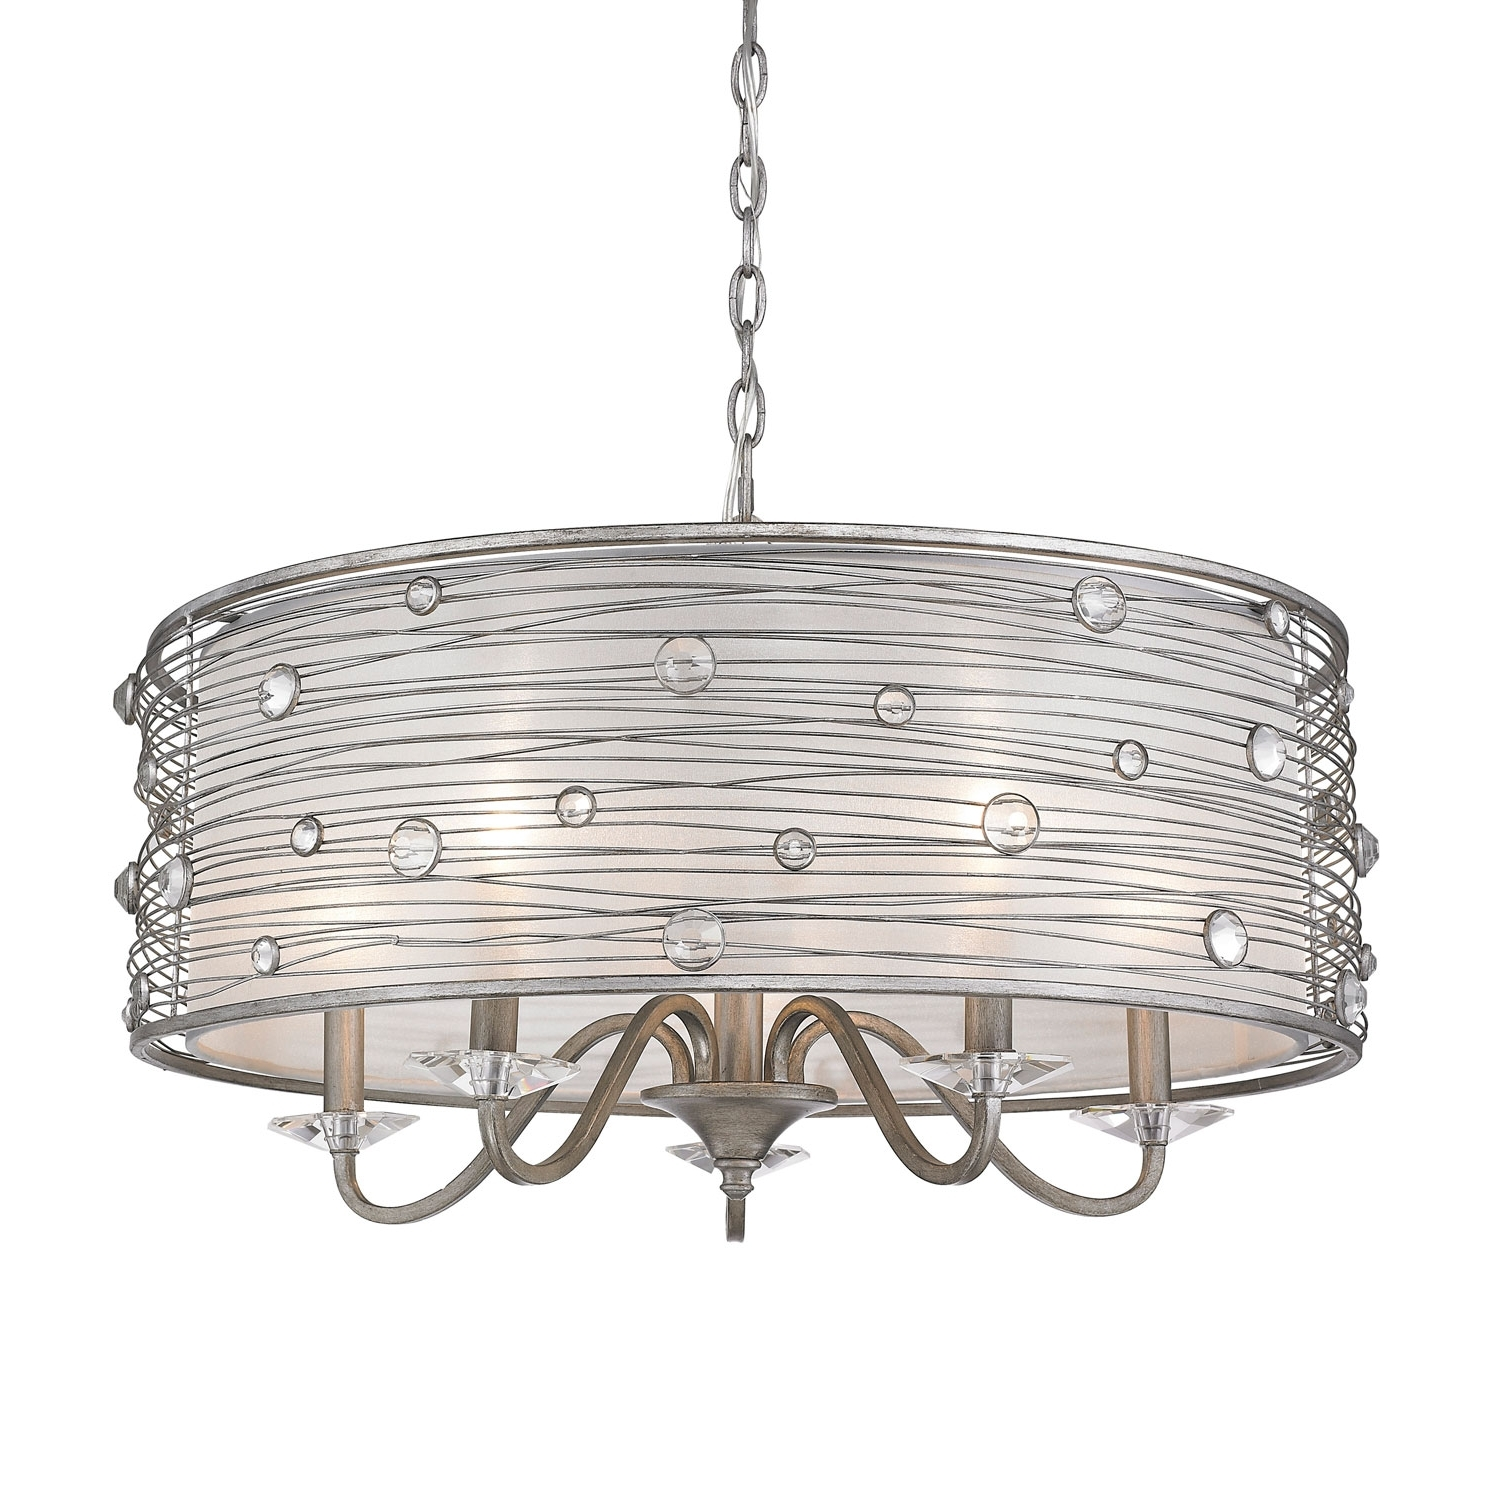 Golden Lighting Joia Peruvian Silver Five Light Chandelier On Sale For Latest Silver Chandeliers (View 14 of 15)